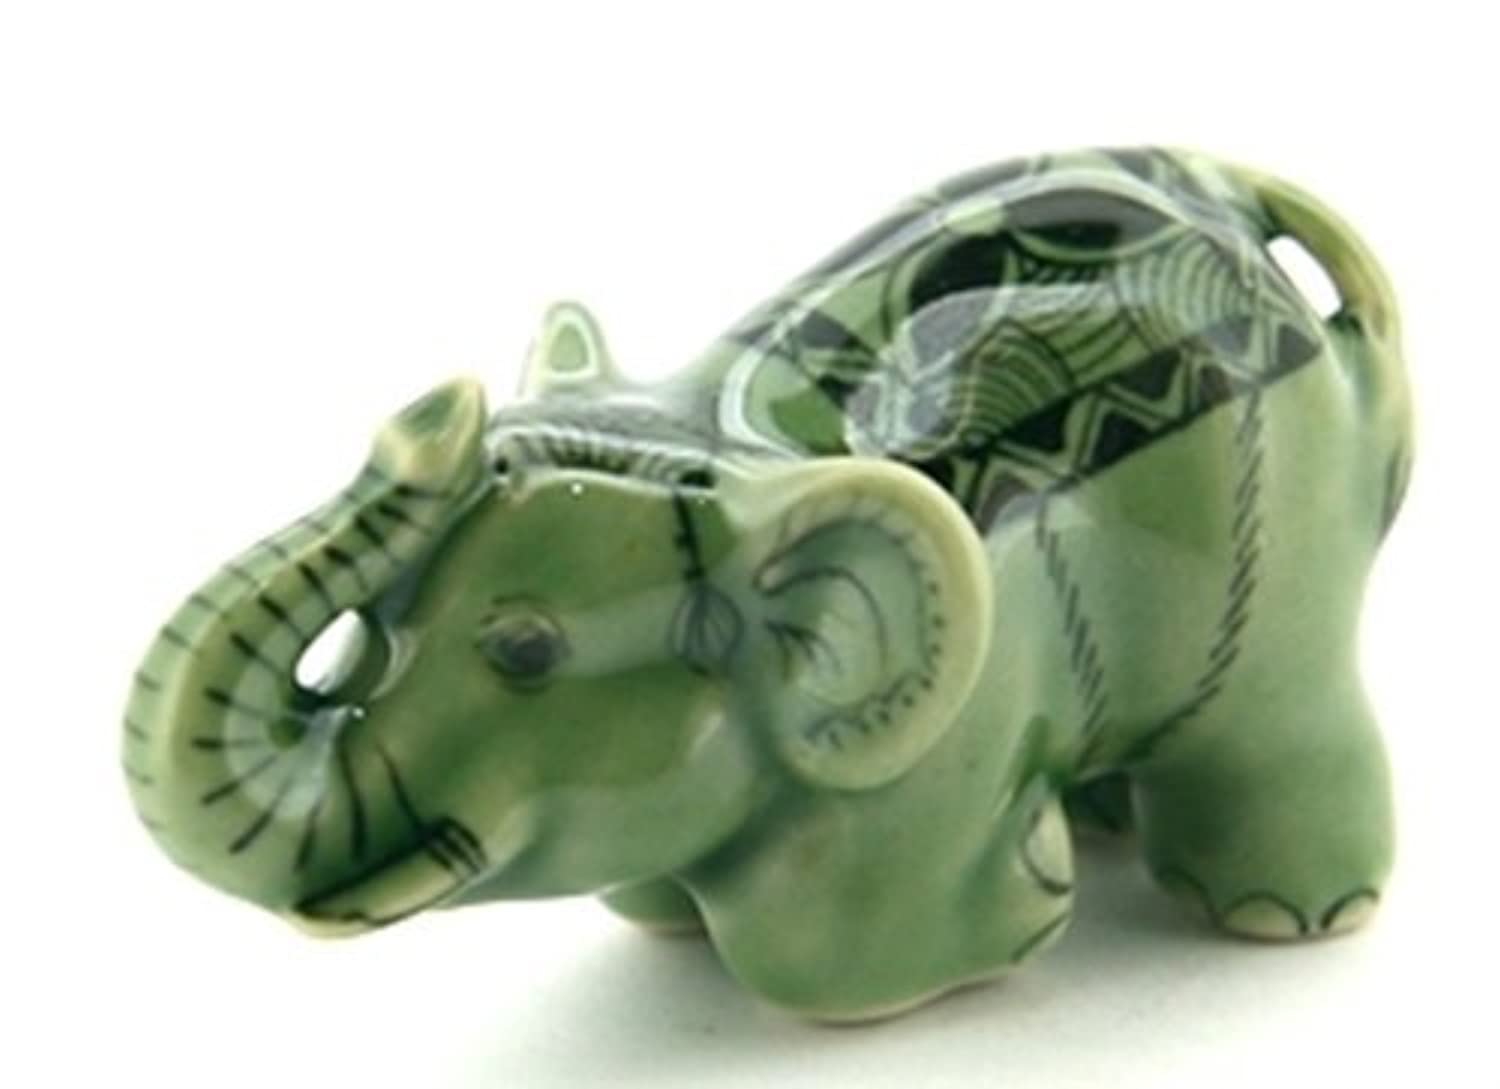 3 D Ceramic Toy Young Green Celadon Elephant No.2 Dollhouse Miniatures Free Ship by ChangThai Design [並行輸入品]